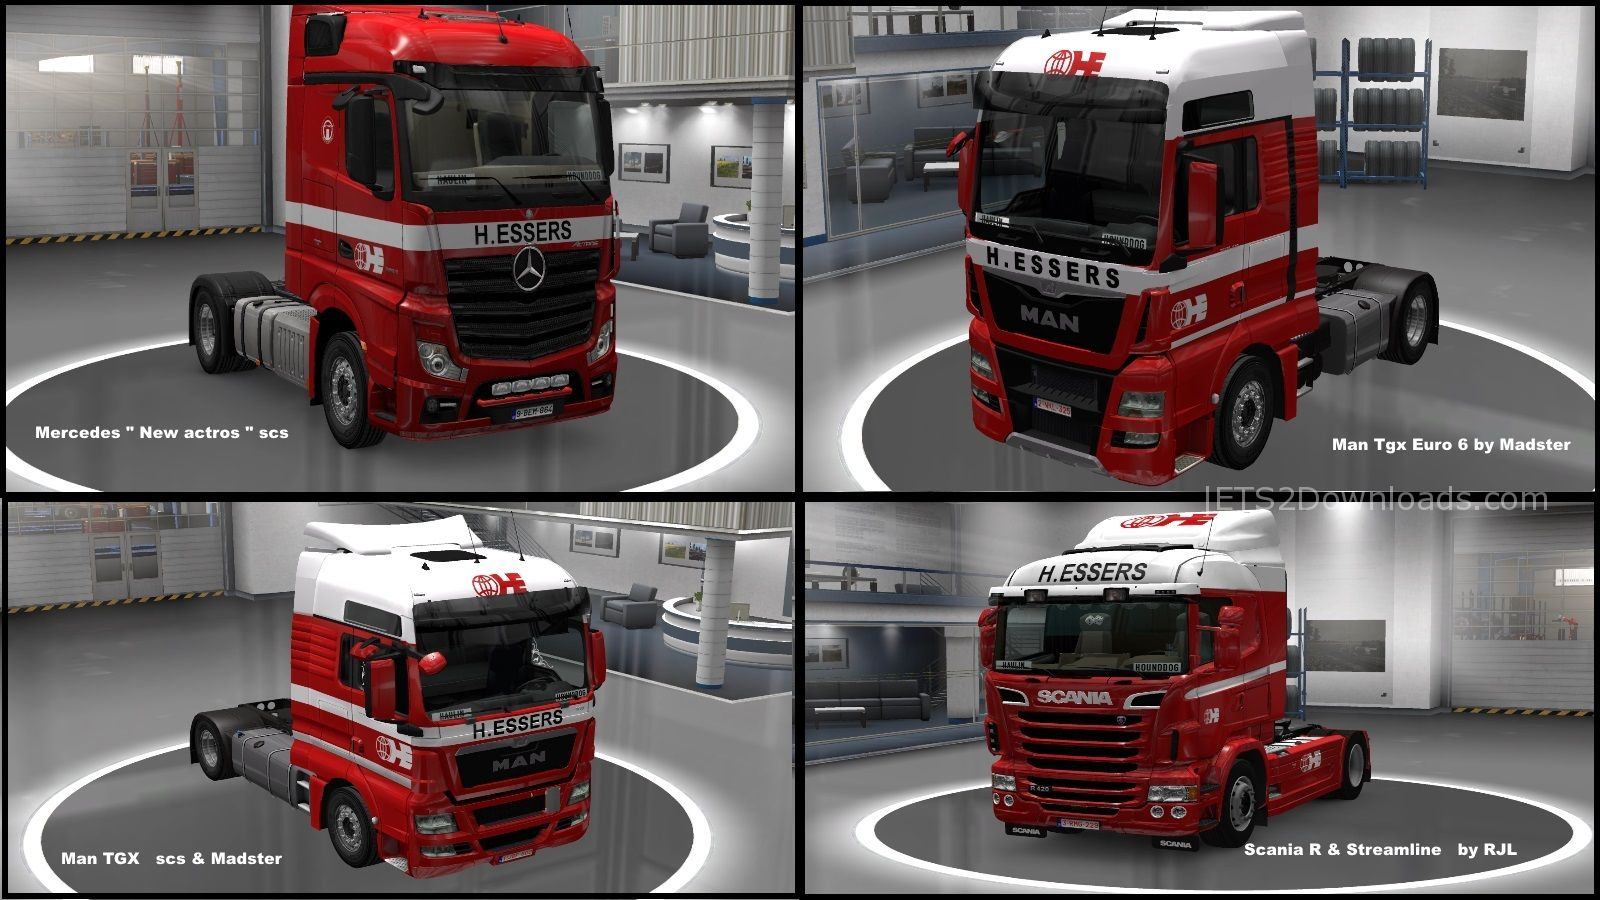 h-essers-skin-for-all-trucks-2